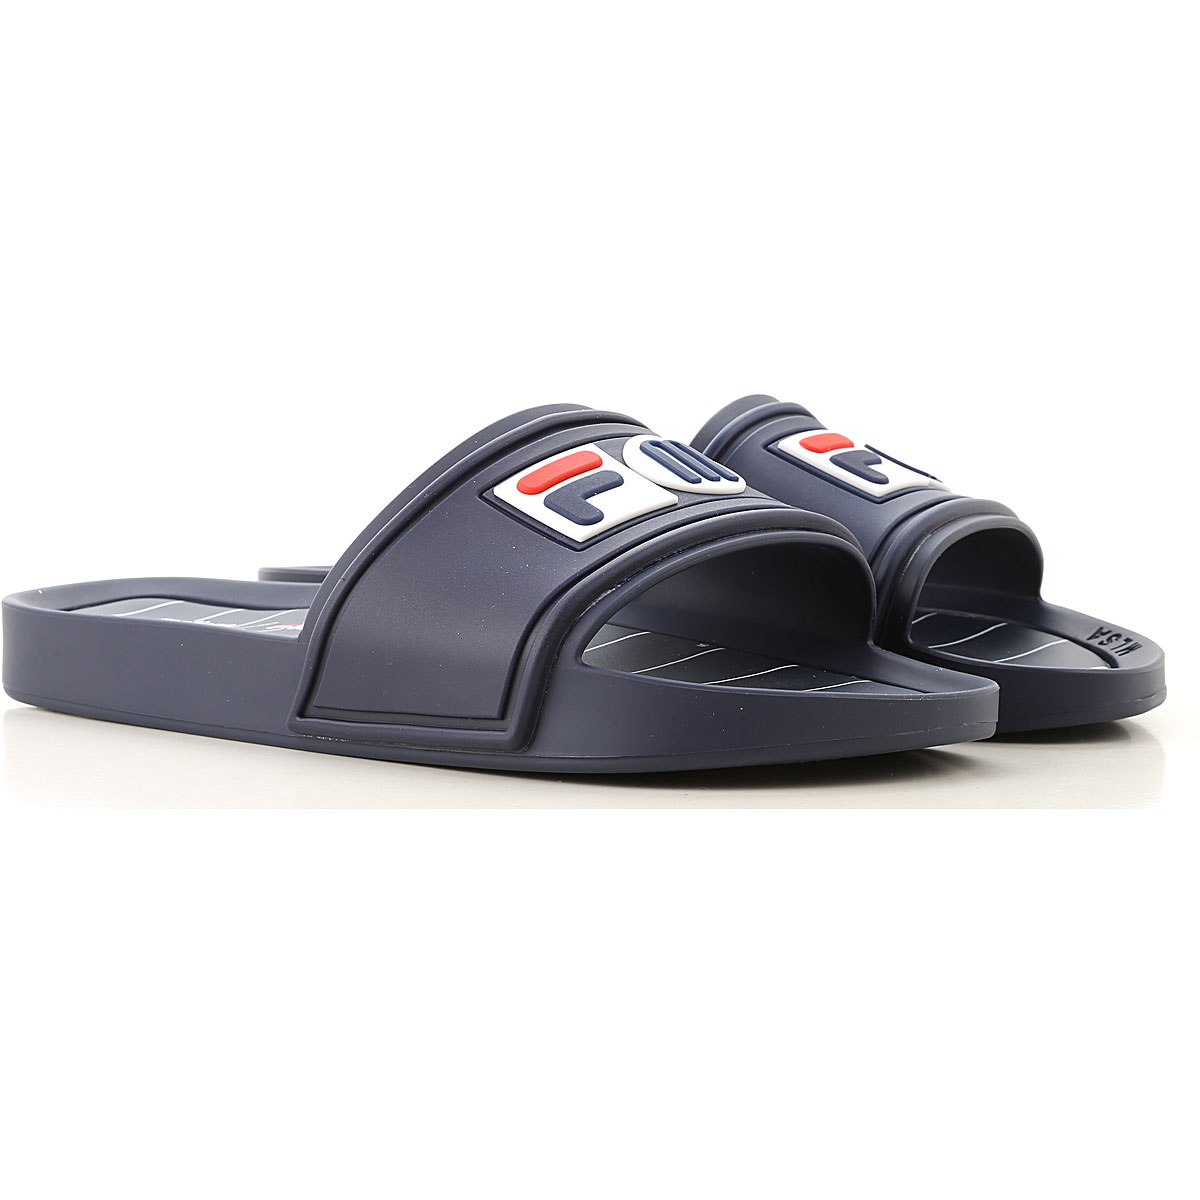 Melissa Sandals for Women On Sale in Outlet, Blue, PVC, 2019, USA 7 - EUR 38